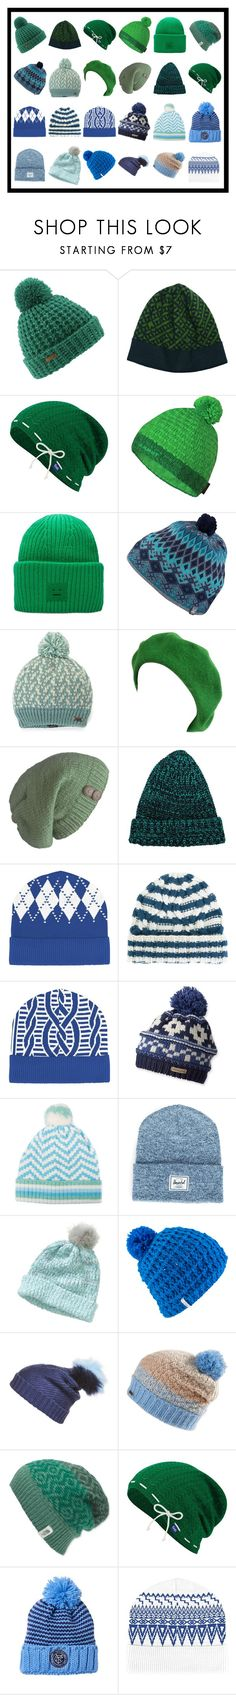 """""""More Beanies #4"""" by franceseattle ❤ liked on Polyvore featuring Coal, Versace, Keds, Mammut, Acne Studios, ibex, adidas, Laundromat, Opening Ceremony and Warm-Me"""